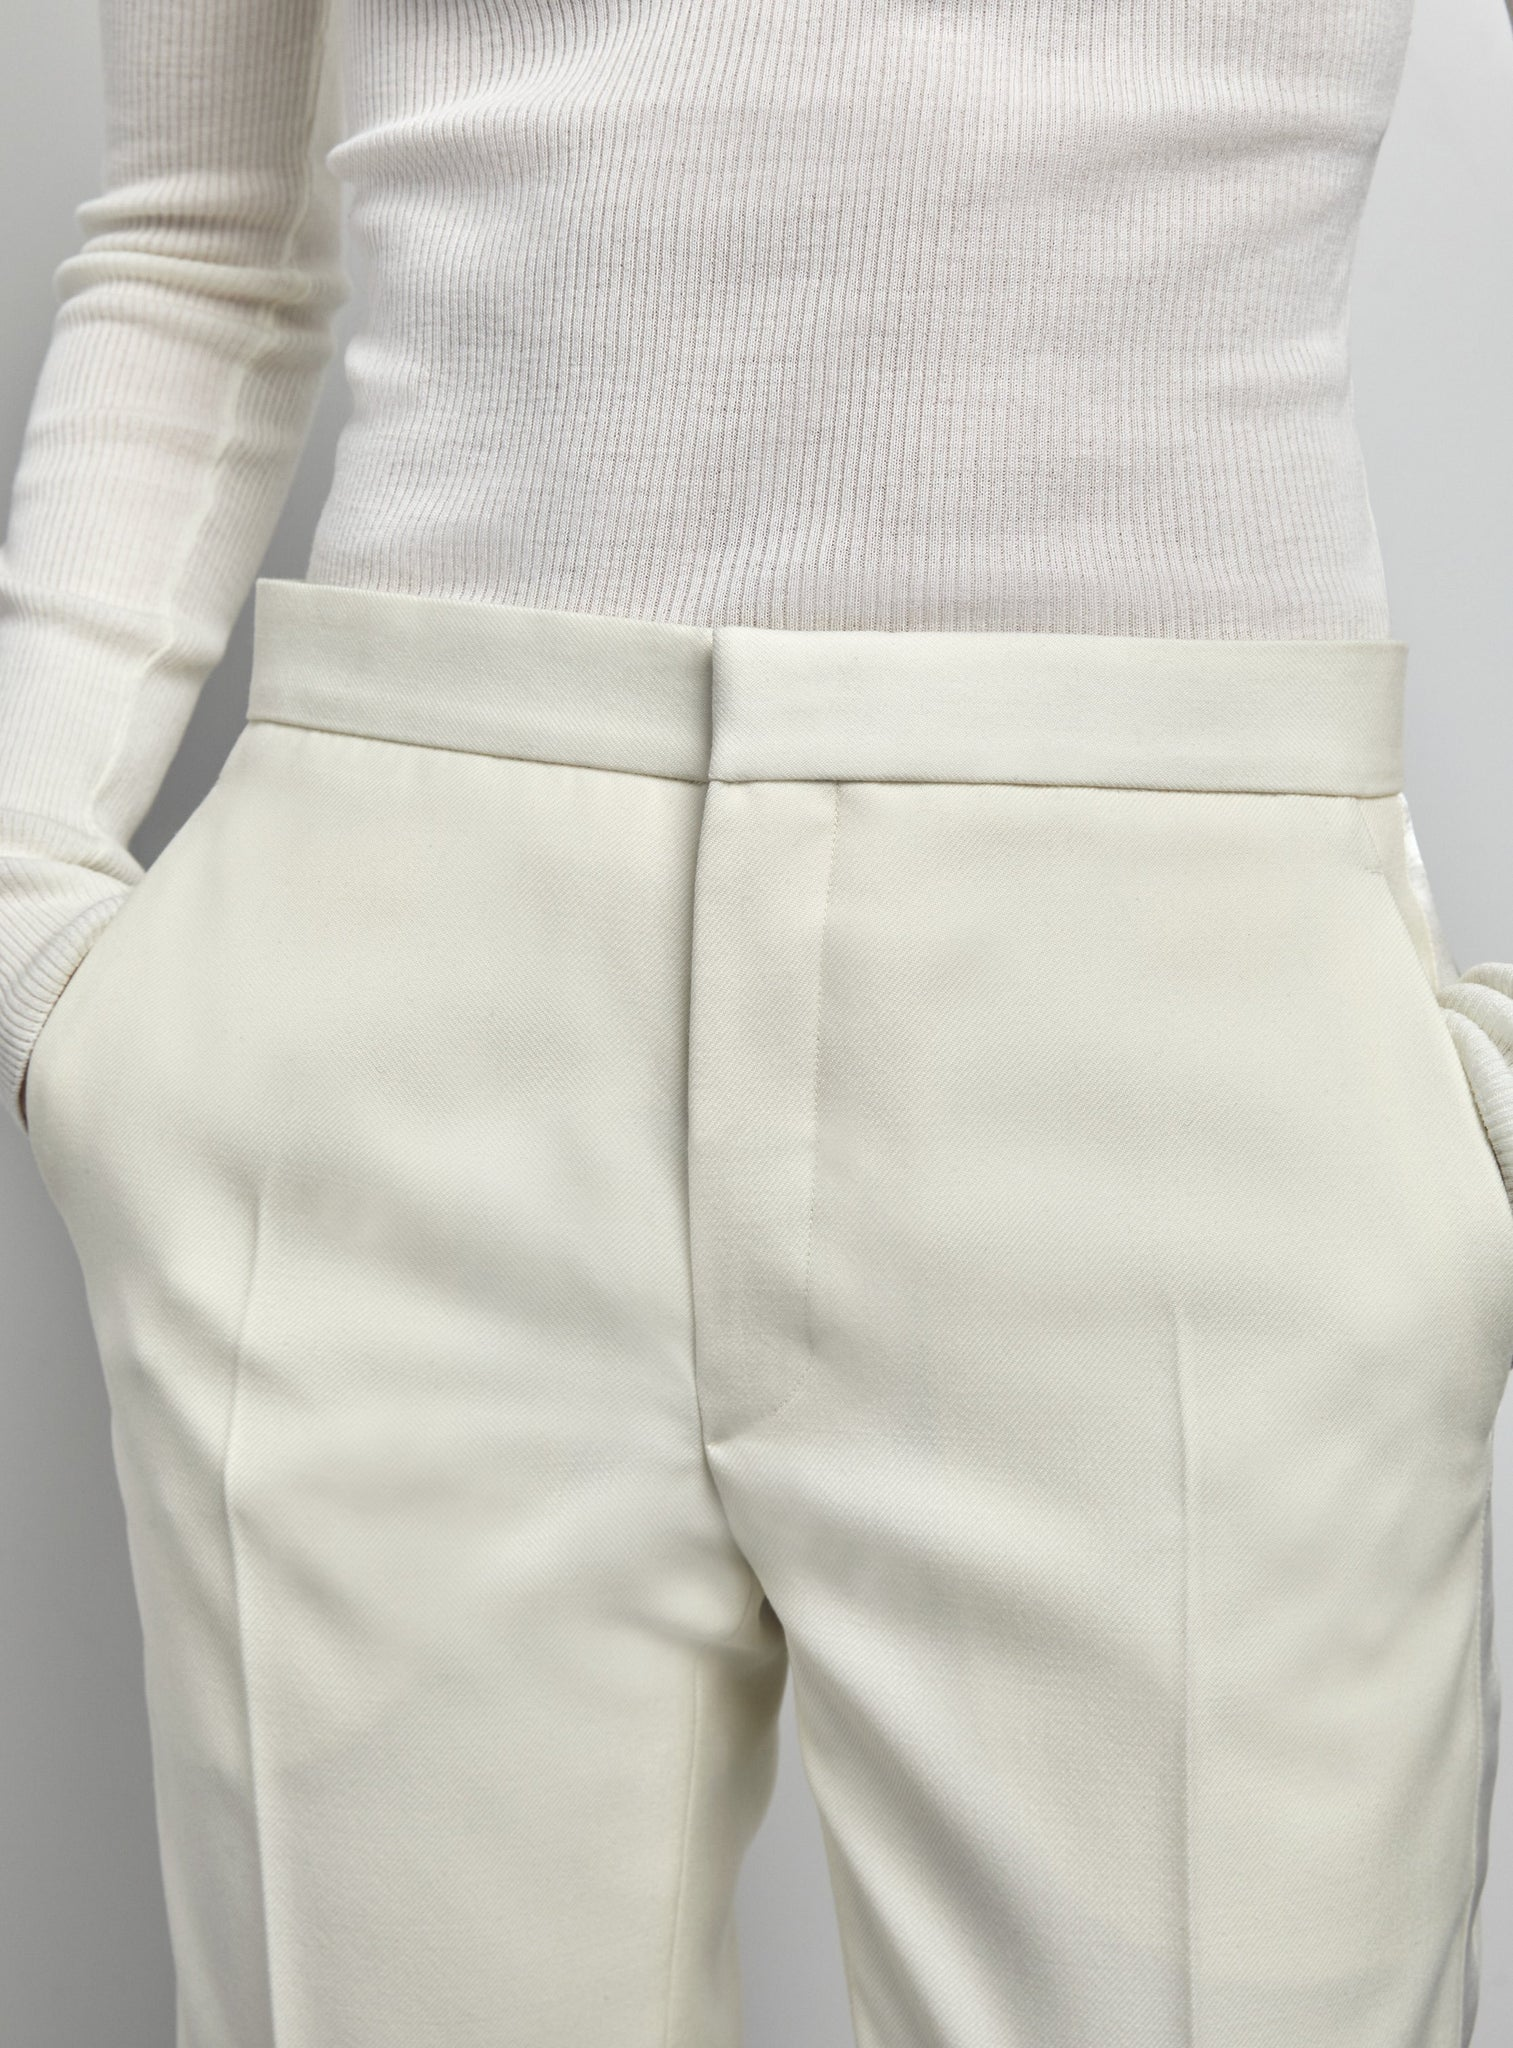 Off White Image variant:color:offwhite variant:style:trouser